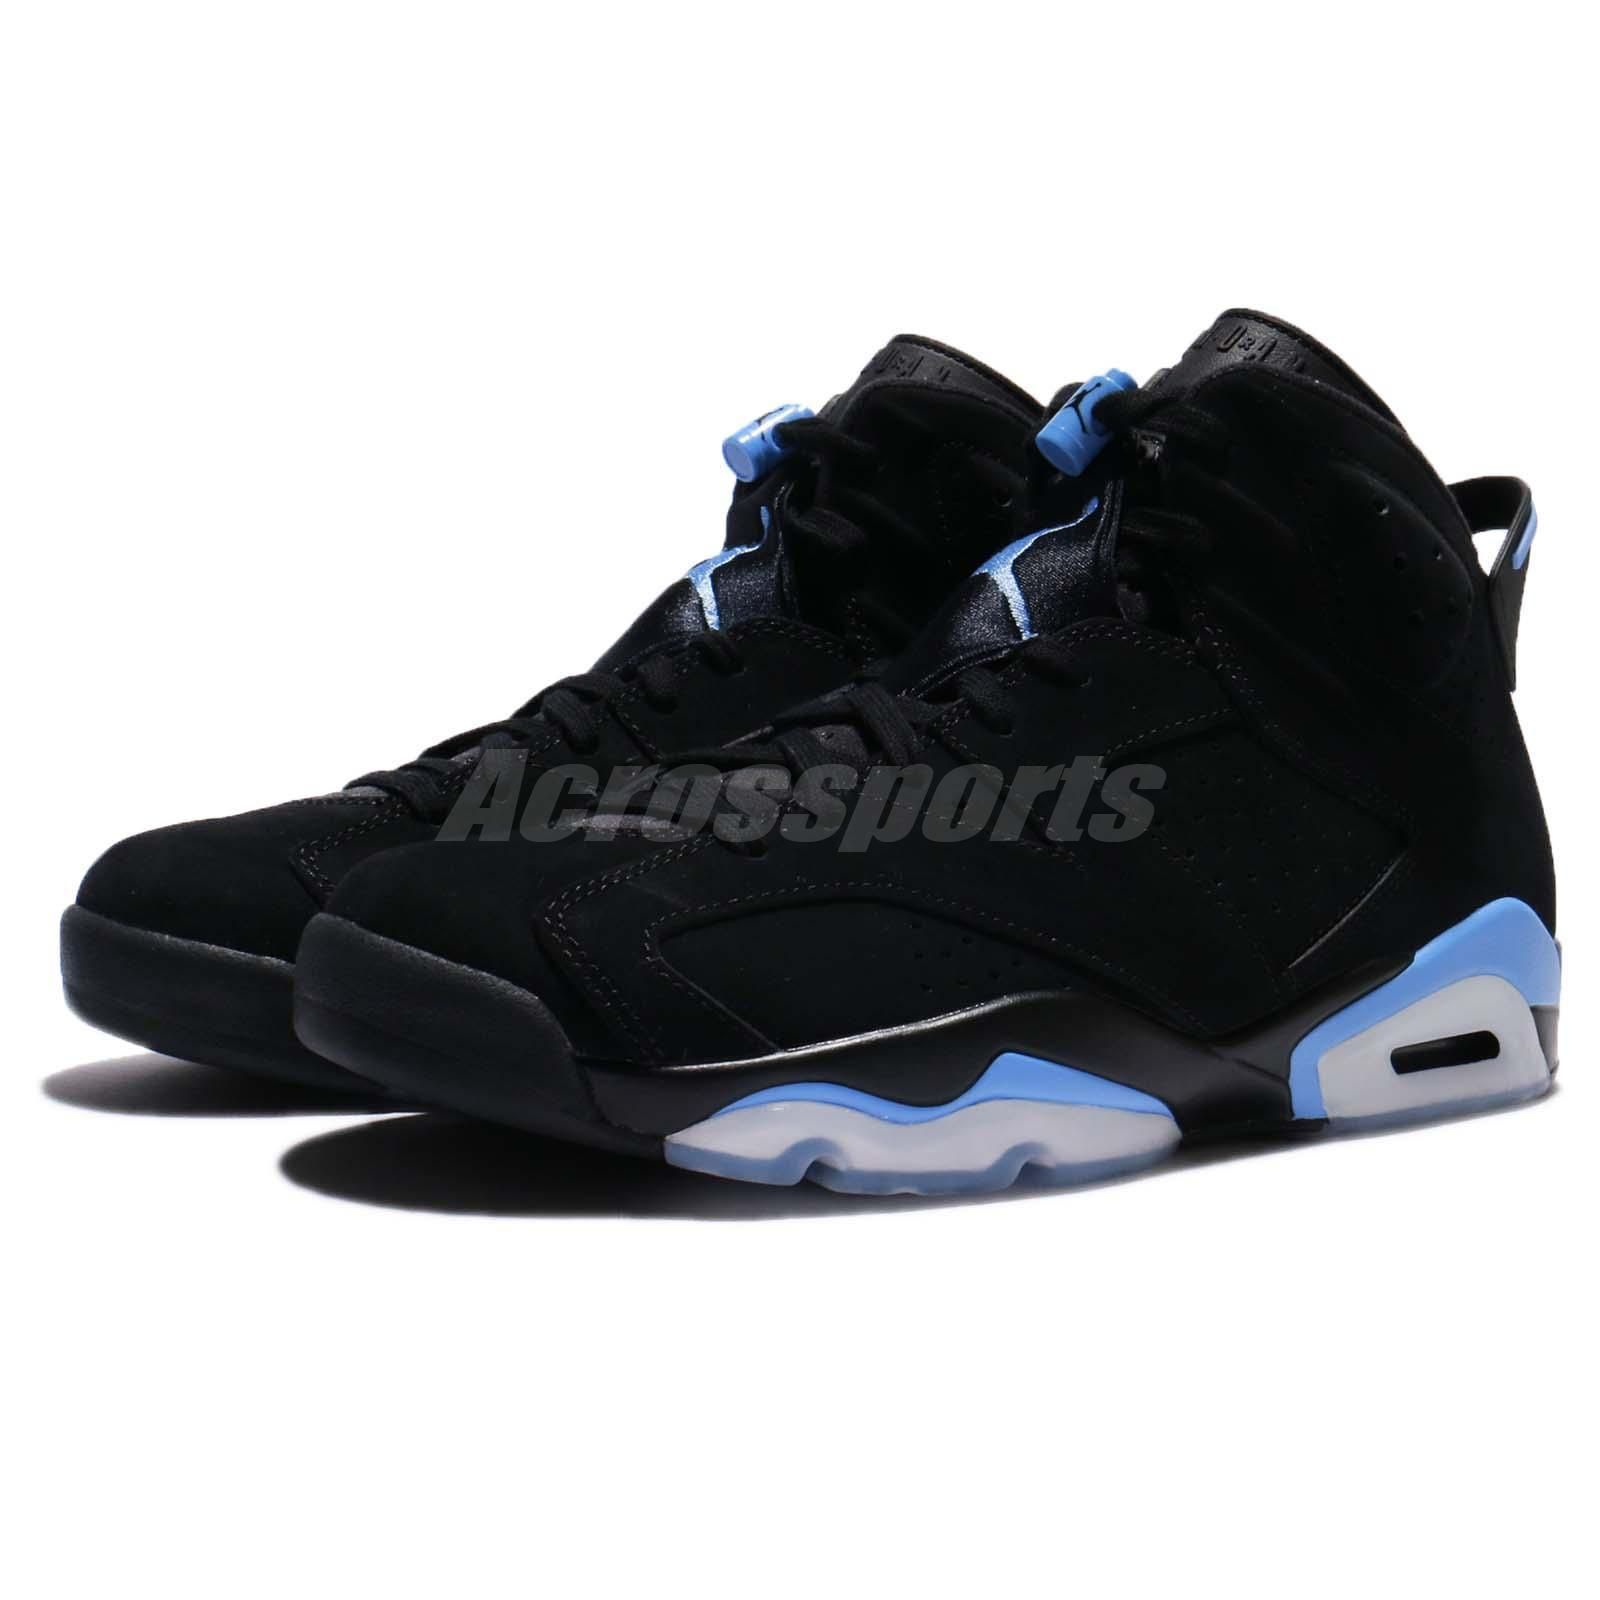 sports shoes 4ebf4 d1da7 Nike Air Jordan 6 Retro VI UNC University Blue Black AJ6 Shoes Men  384664-006 S N  384664006 Color  BLACK UNIVERSITY BLUE Made In   Condition  Brand New ...